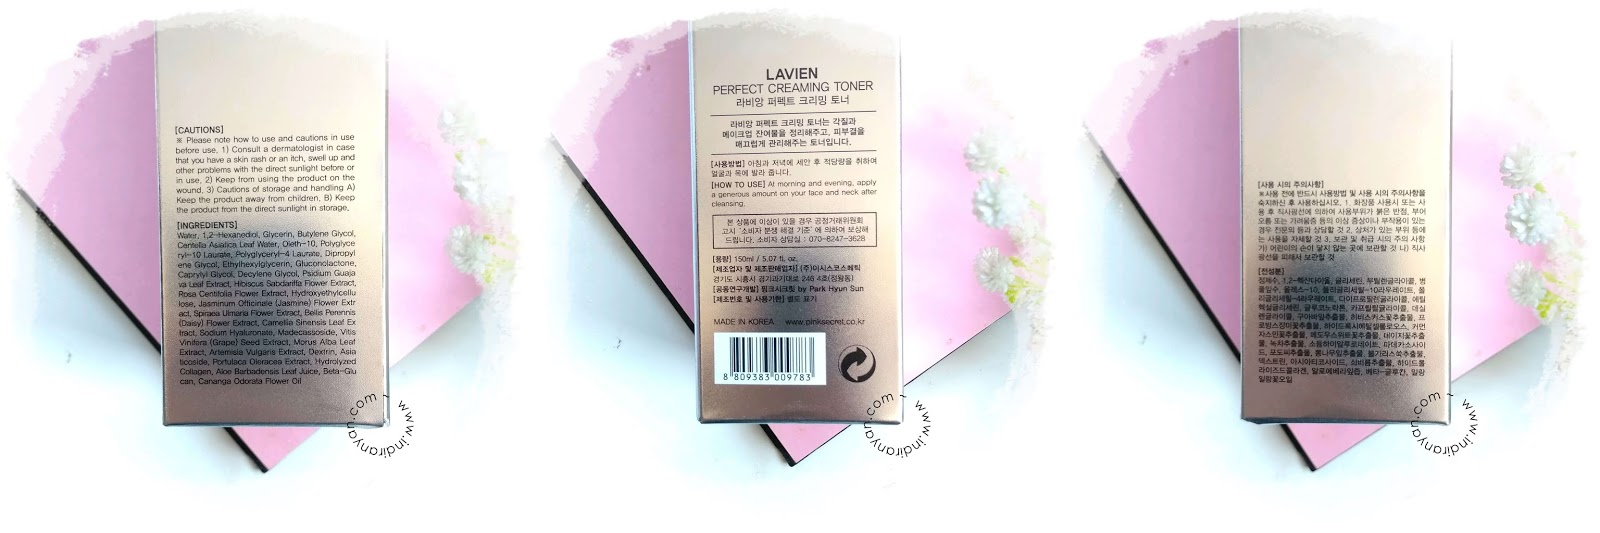 lavien-perfect-creaming-toner